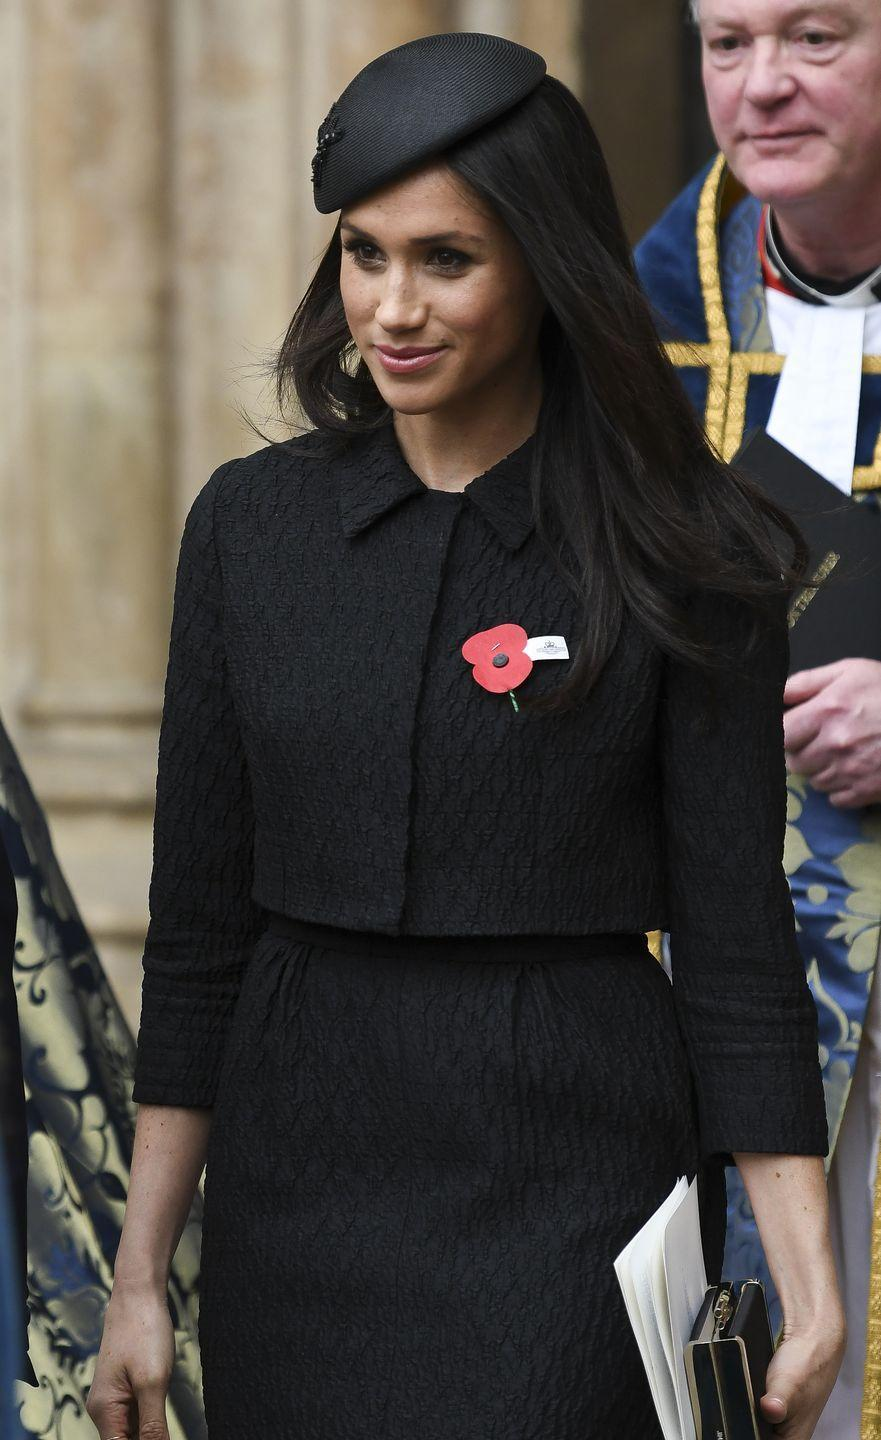 <p>Meghan followed suit with a similar outfit while attending an Anzac Day service in 2018. </p>